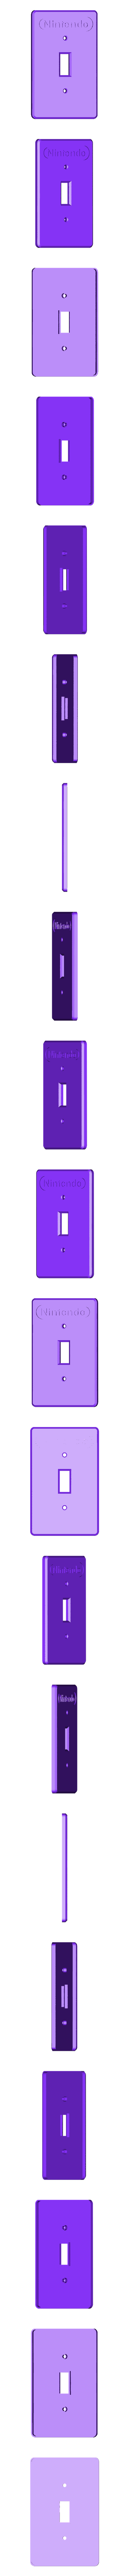 plate.stl Download free STL file Nintendo Switch (Plate) for MMU or Dual Extruder • 3D printer object, mkoistinen